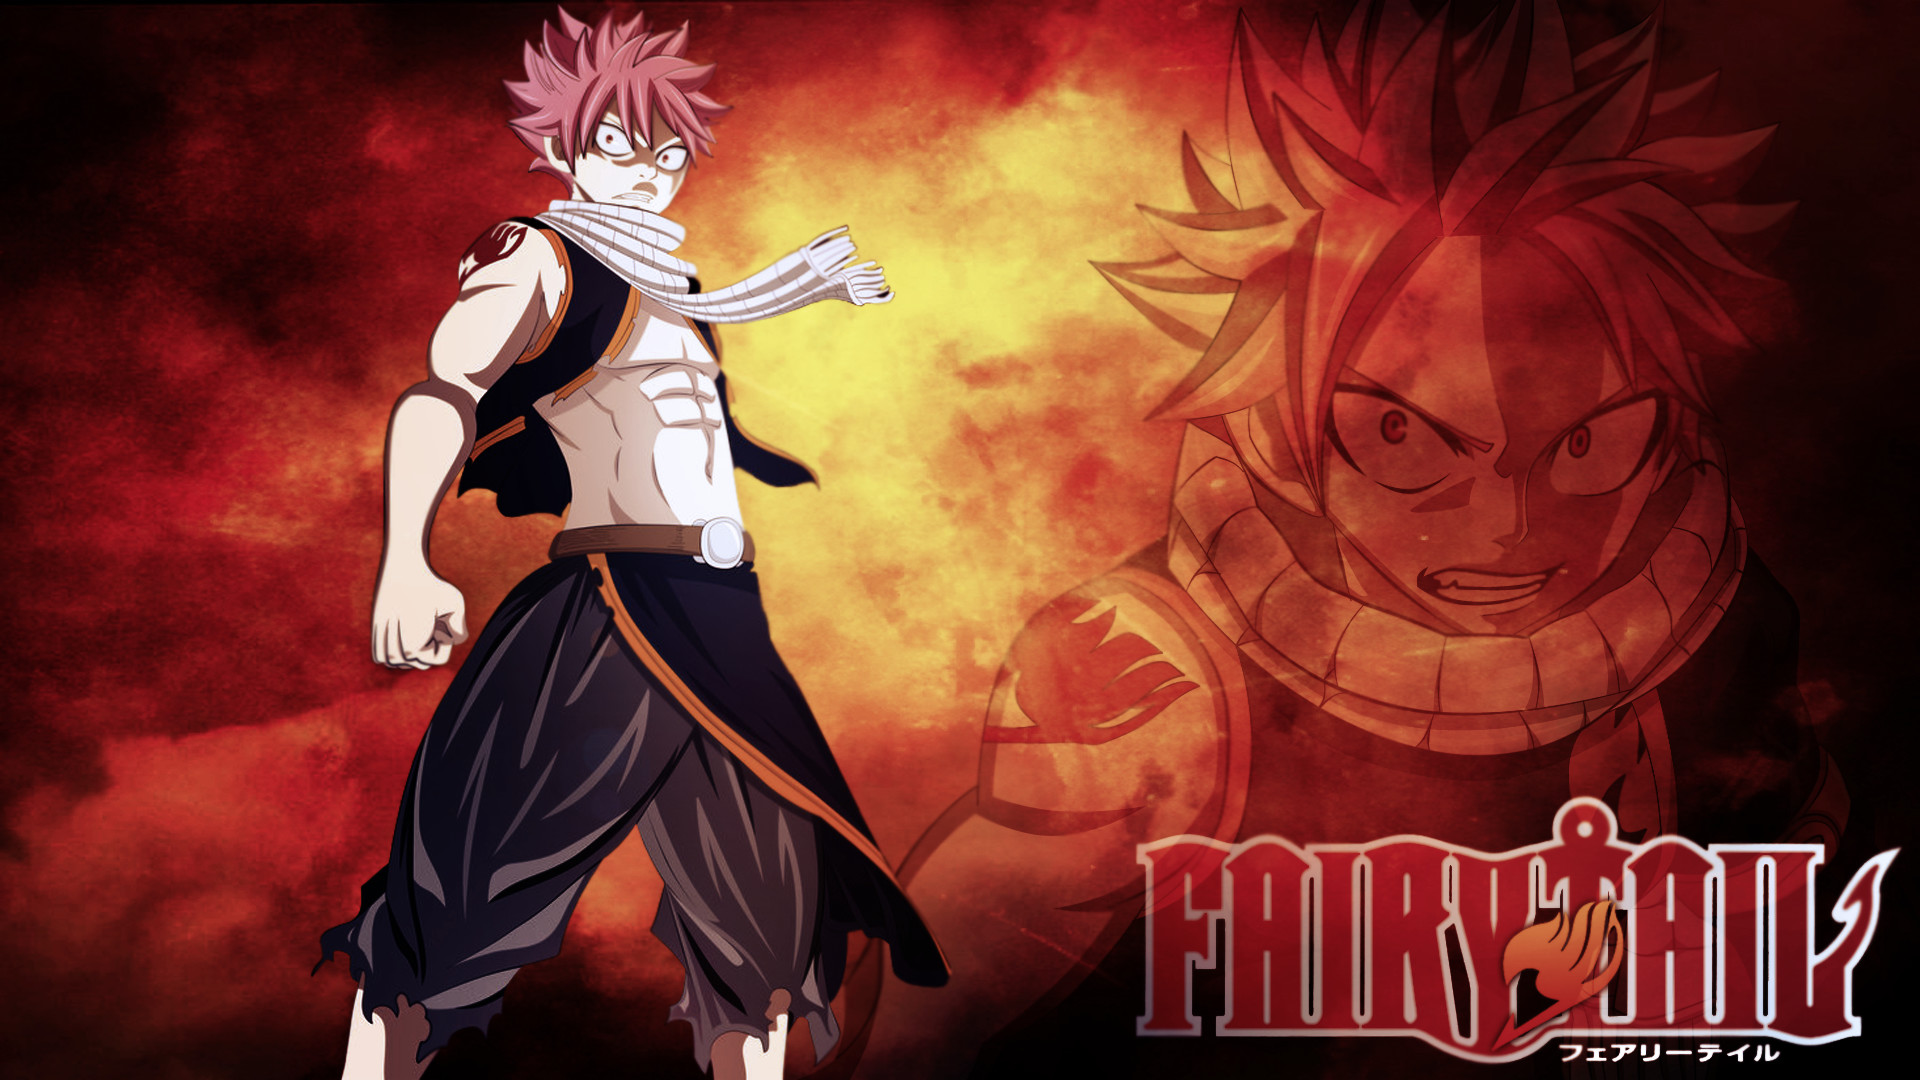 1920x1080 Fairy Tail Wallpaper Background HD